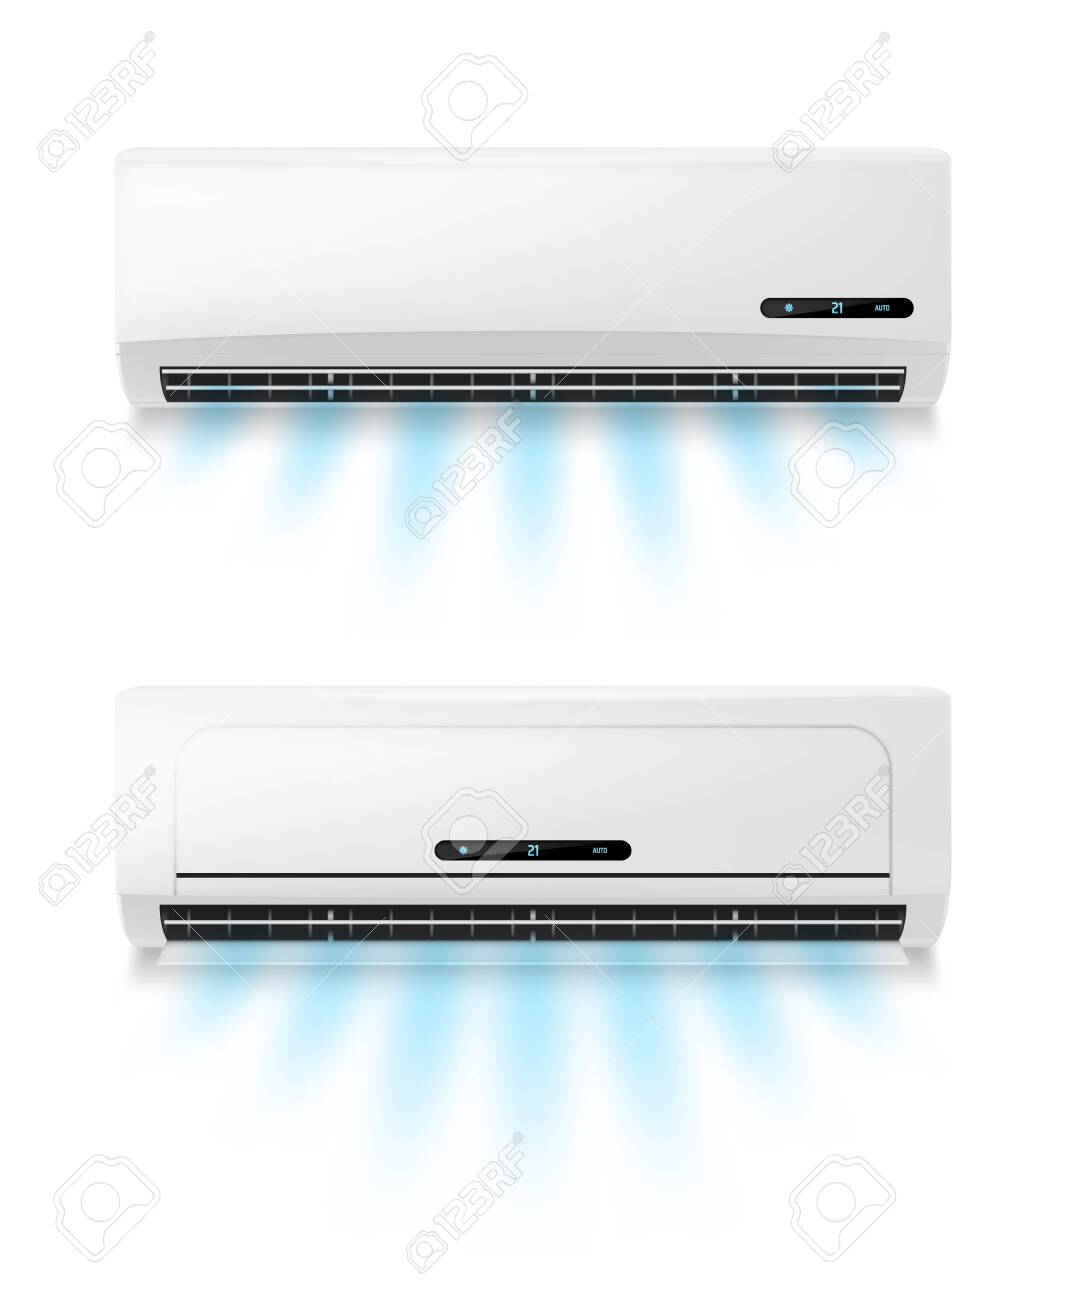 Conditioners, realistic air conditioning eqipment vector mockup. Working and blowing out cold, fresh flows through vents, cooling room air conditioner unit. AC installing, maintenance service - 150058137